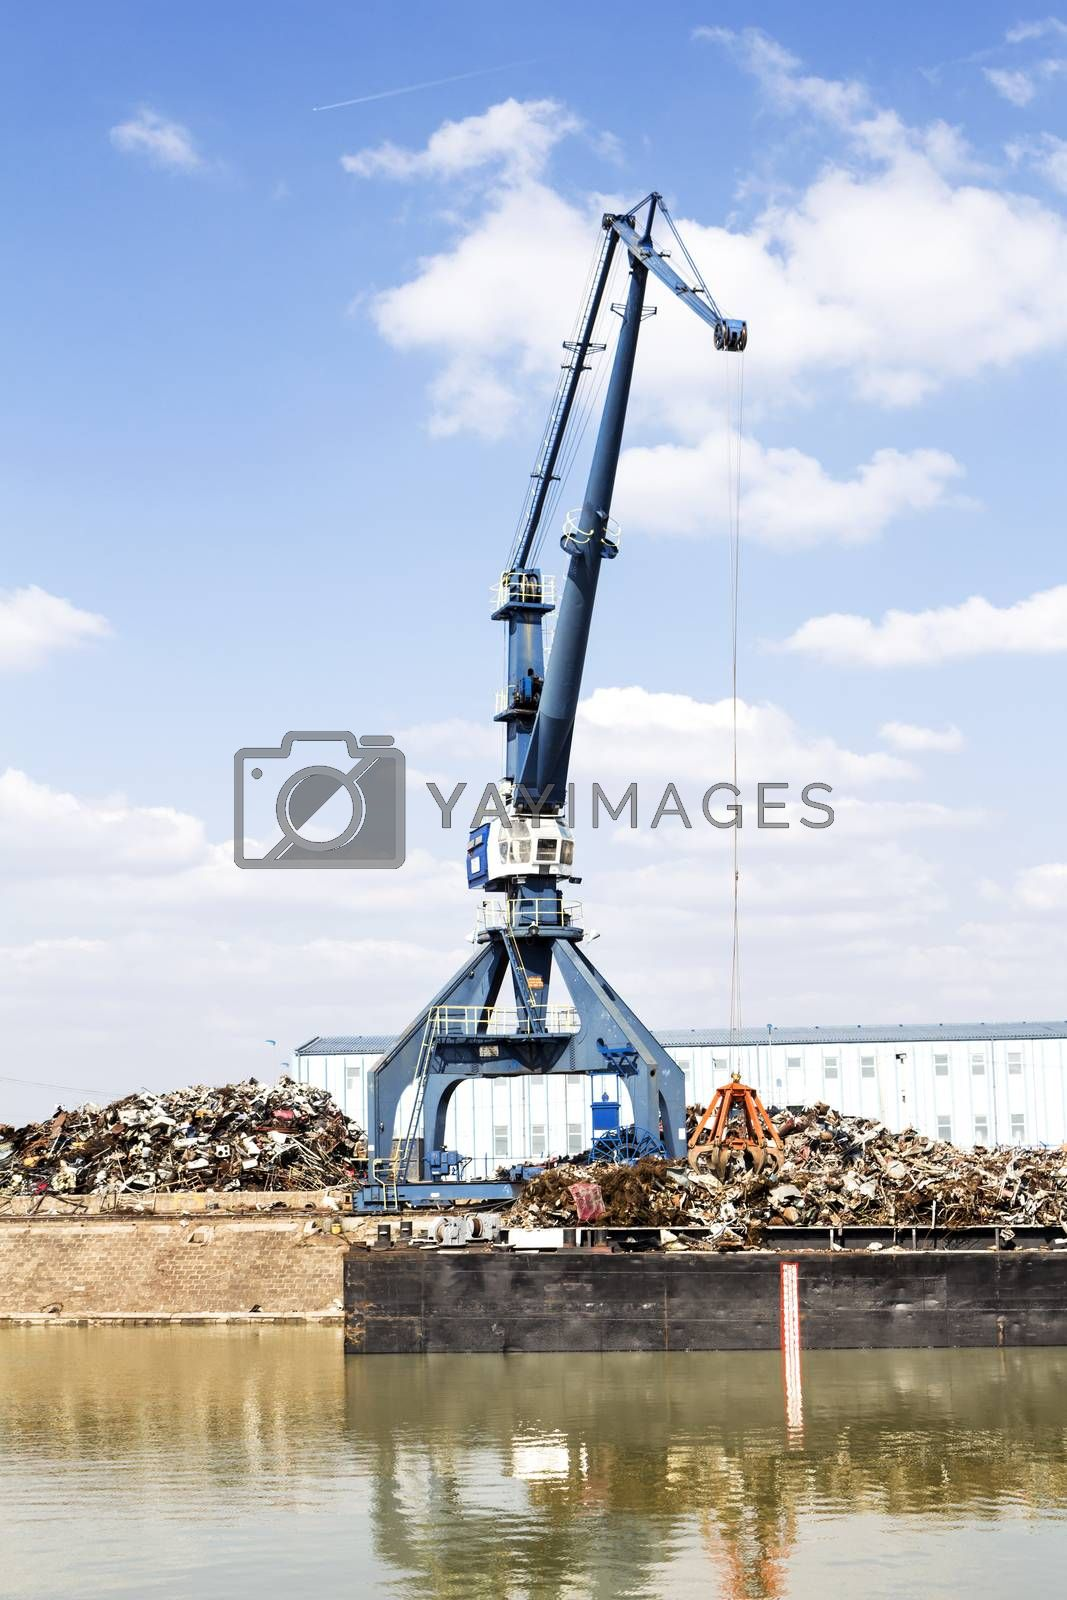 Cranes operating in the recycling area